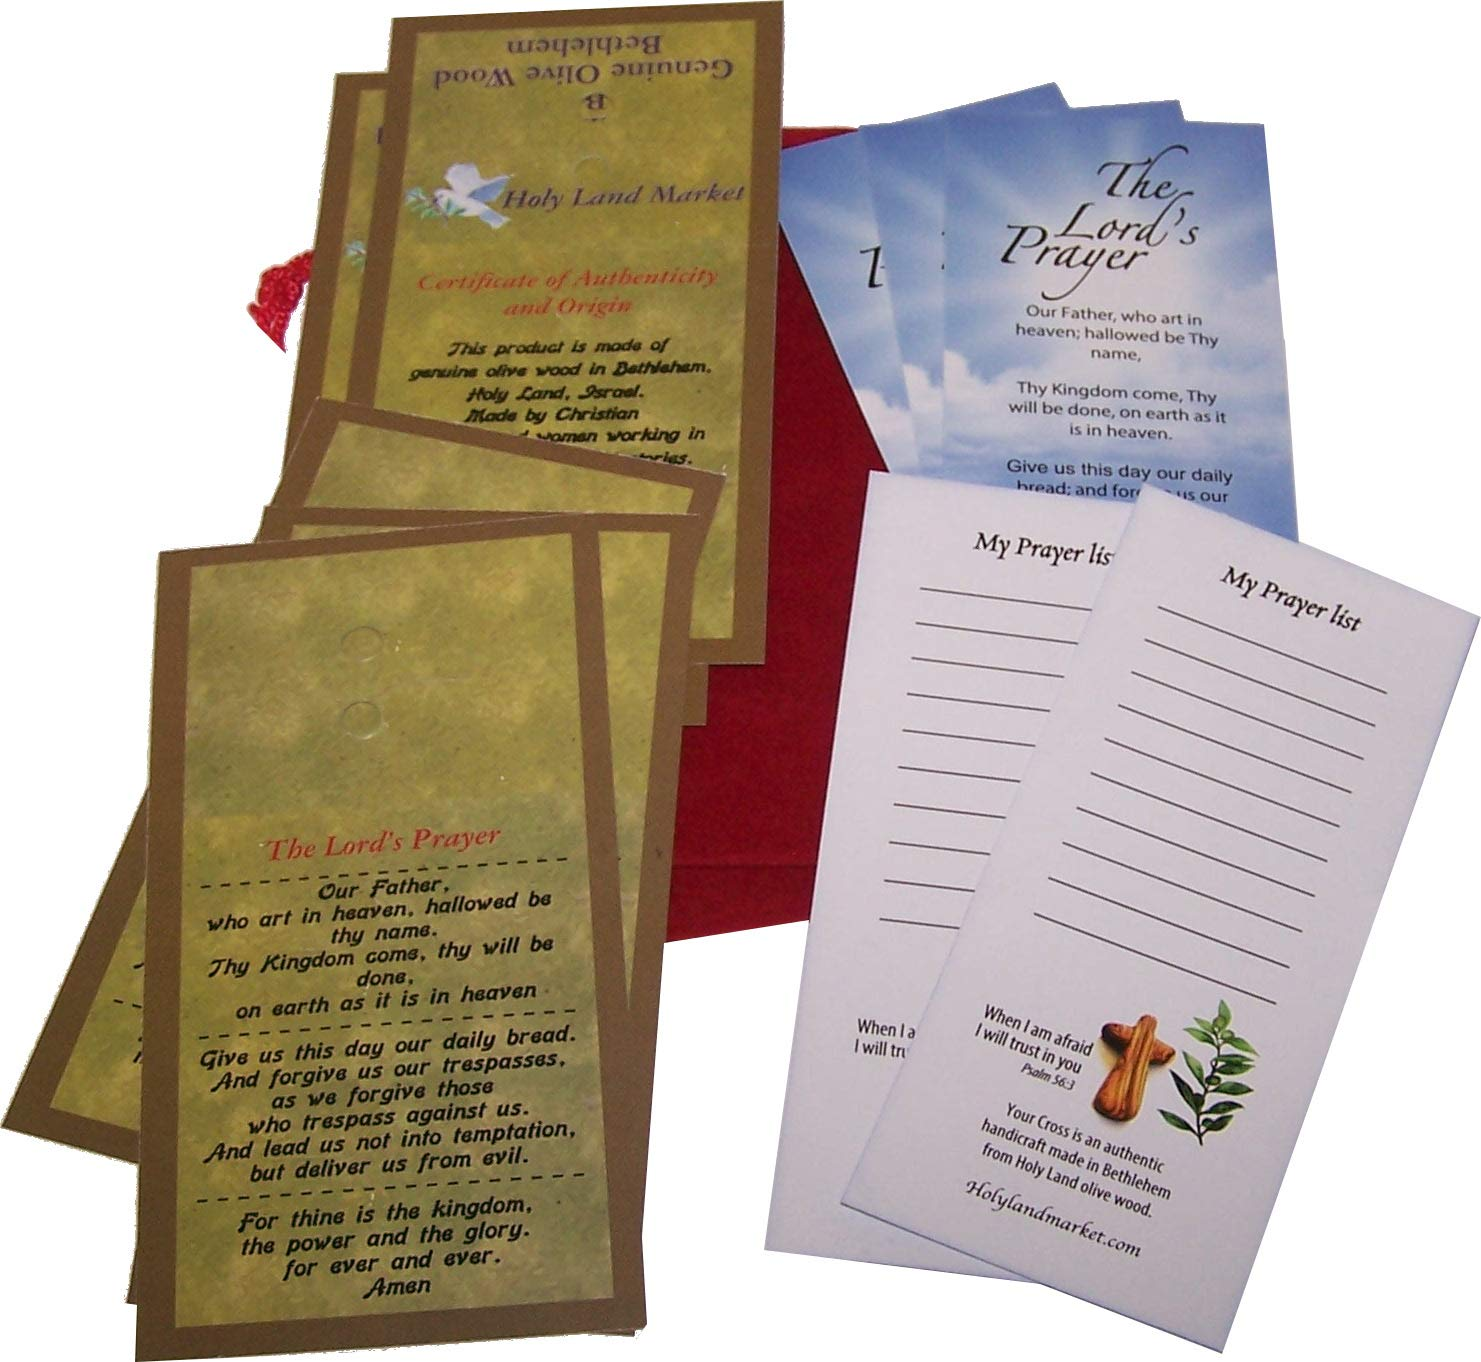 Six Olive Wood Comfort Crosses with Velvet Bags & Lord's Prayer Card - The Holding or Hand Cross (4 inches) - Large by Holy Land Market (Image #2)